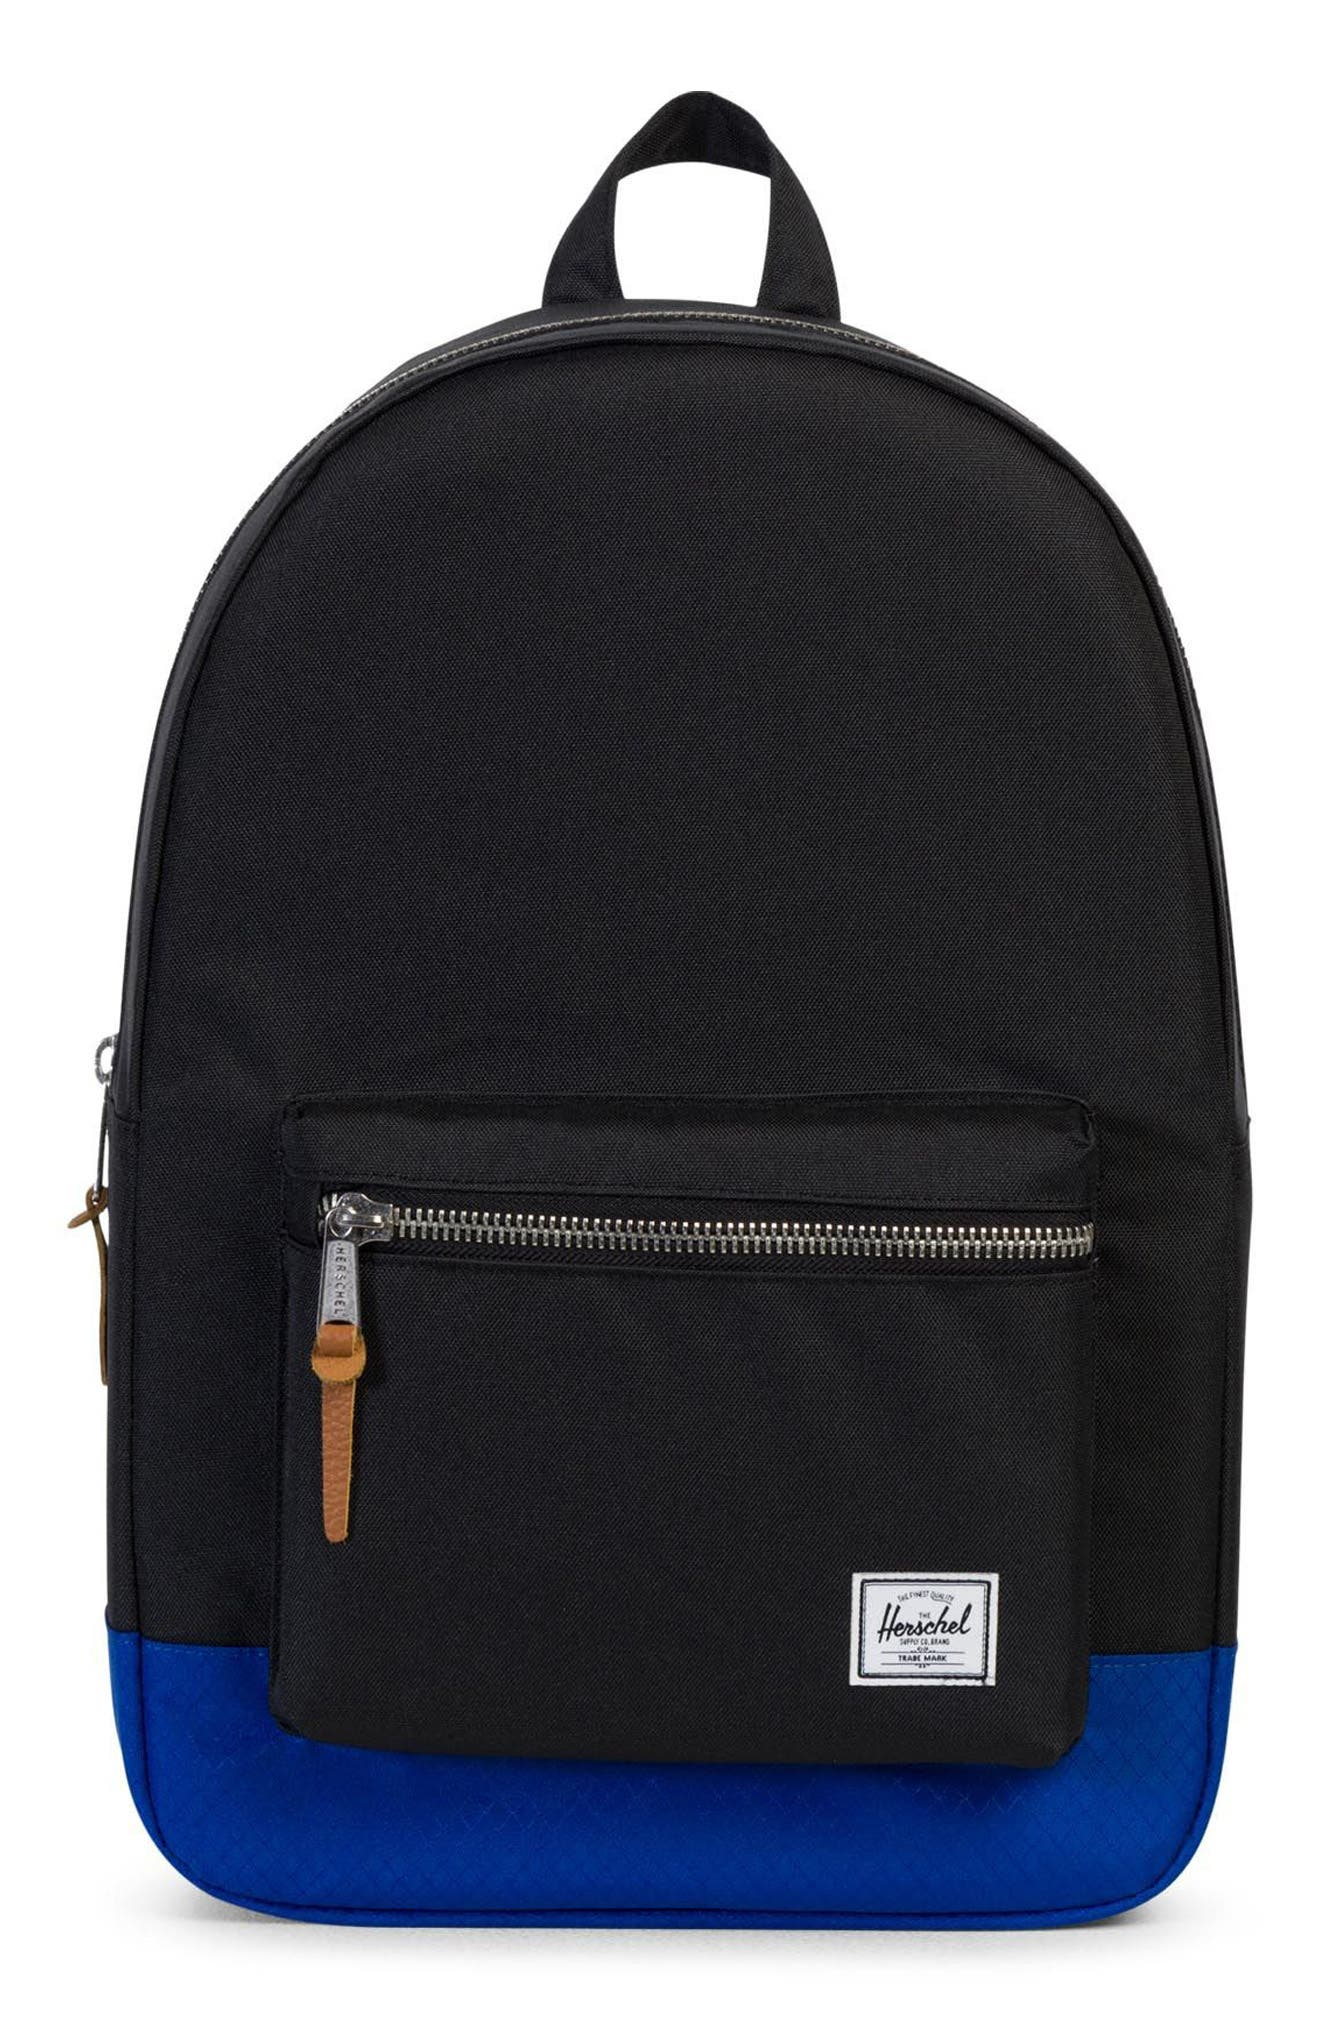 Settlement Backpack,                             Main thumbnail 1, color,                             Black/ Surf The Web